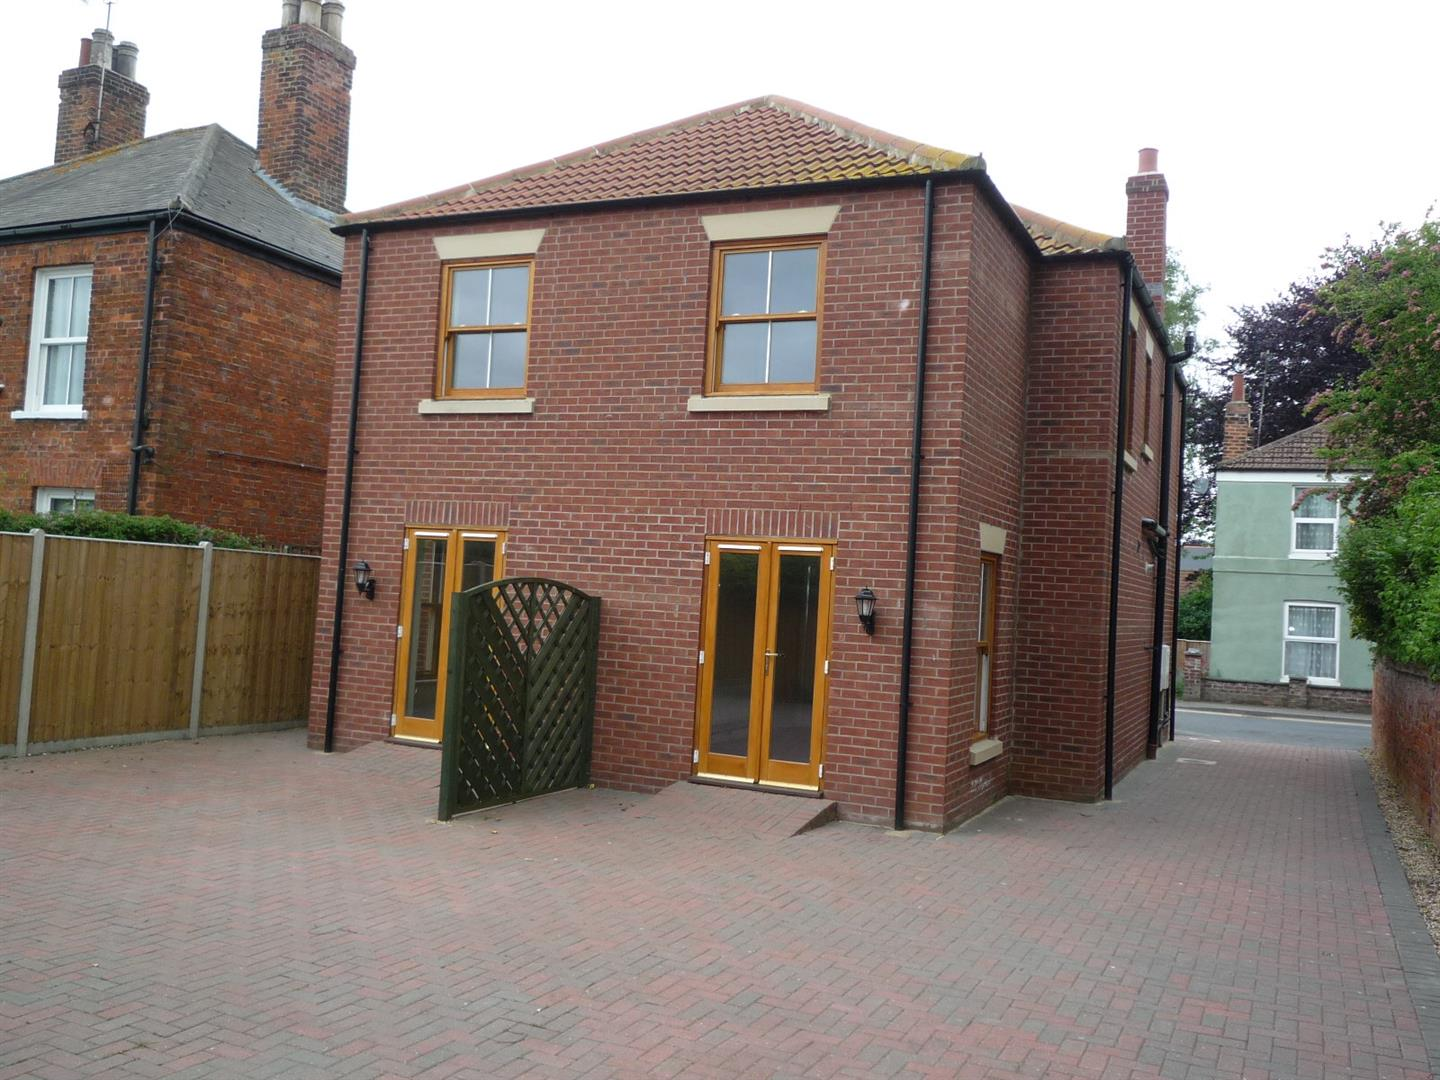 3 bed house to rent in Holbeach Spalding, PE12 7DR 1